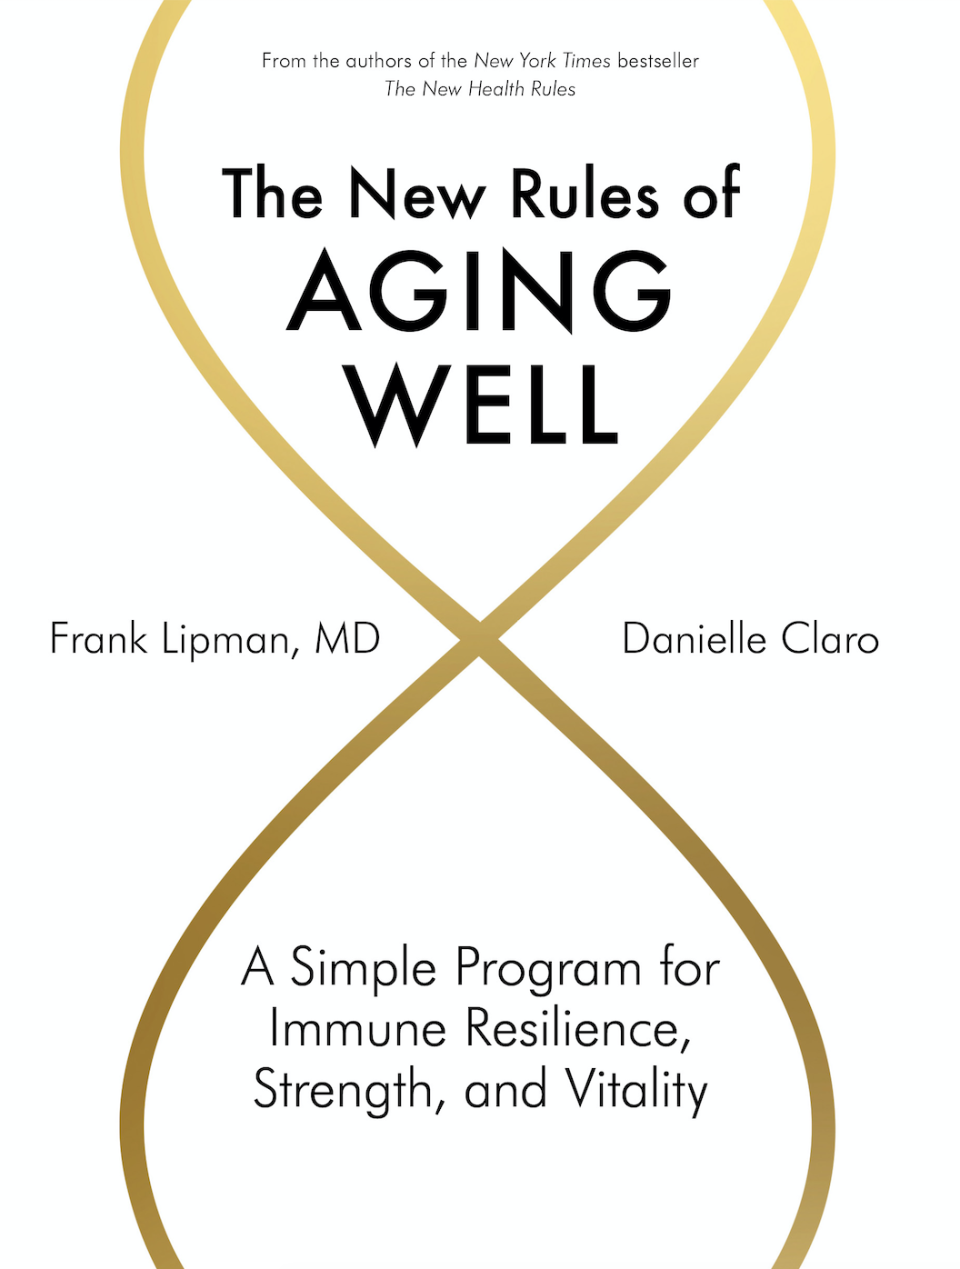 Essential reading for COVID times: This cutting-edge e-book helps you boost immunity and overall health.